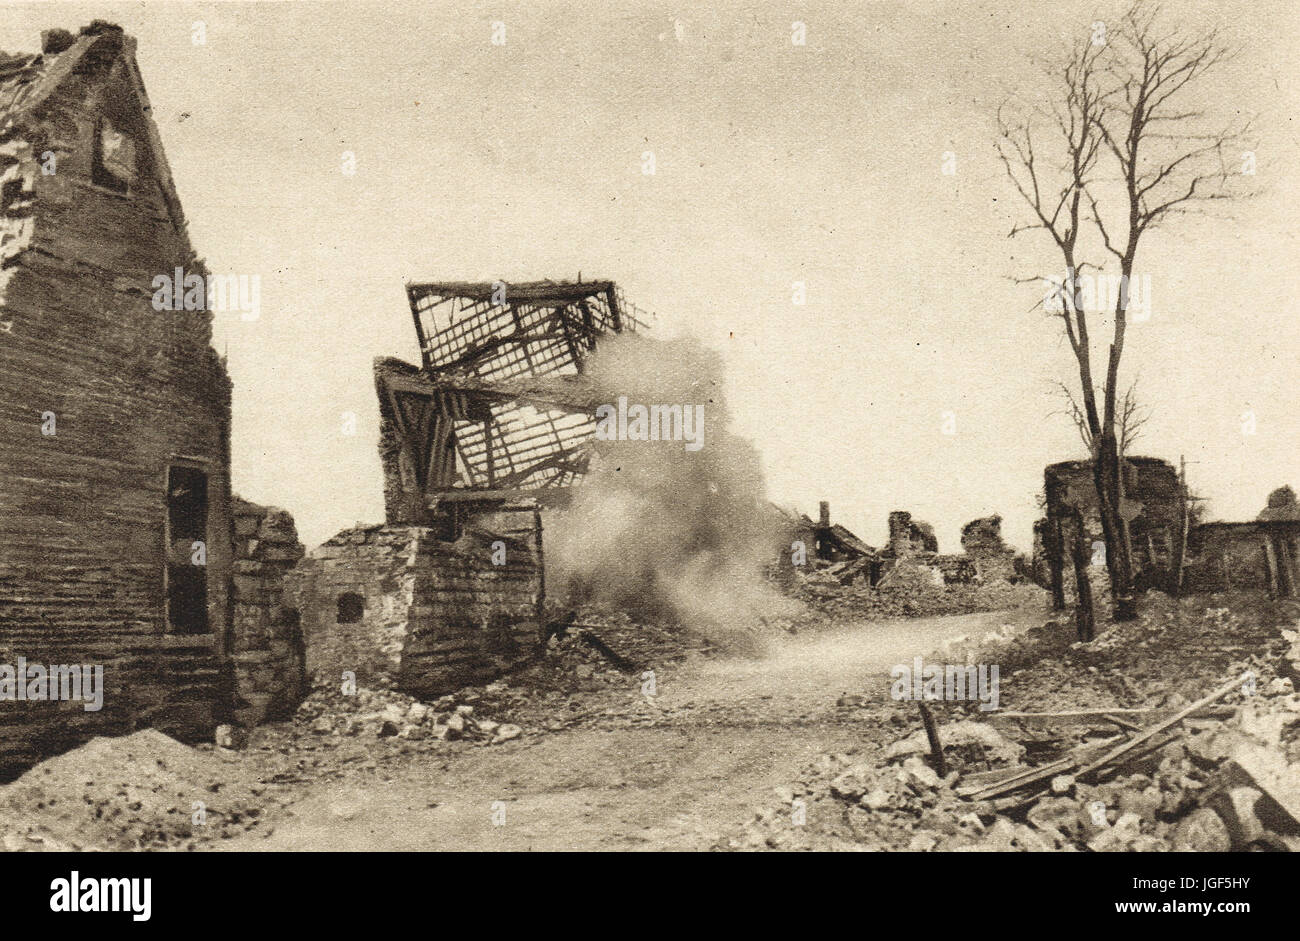 German shell exploding in French village - Stock Image